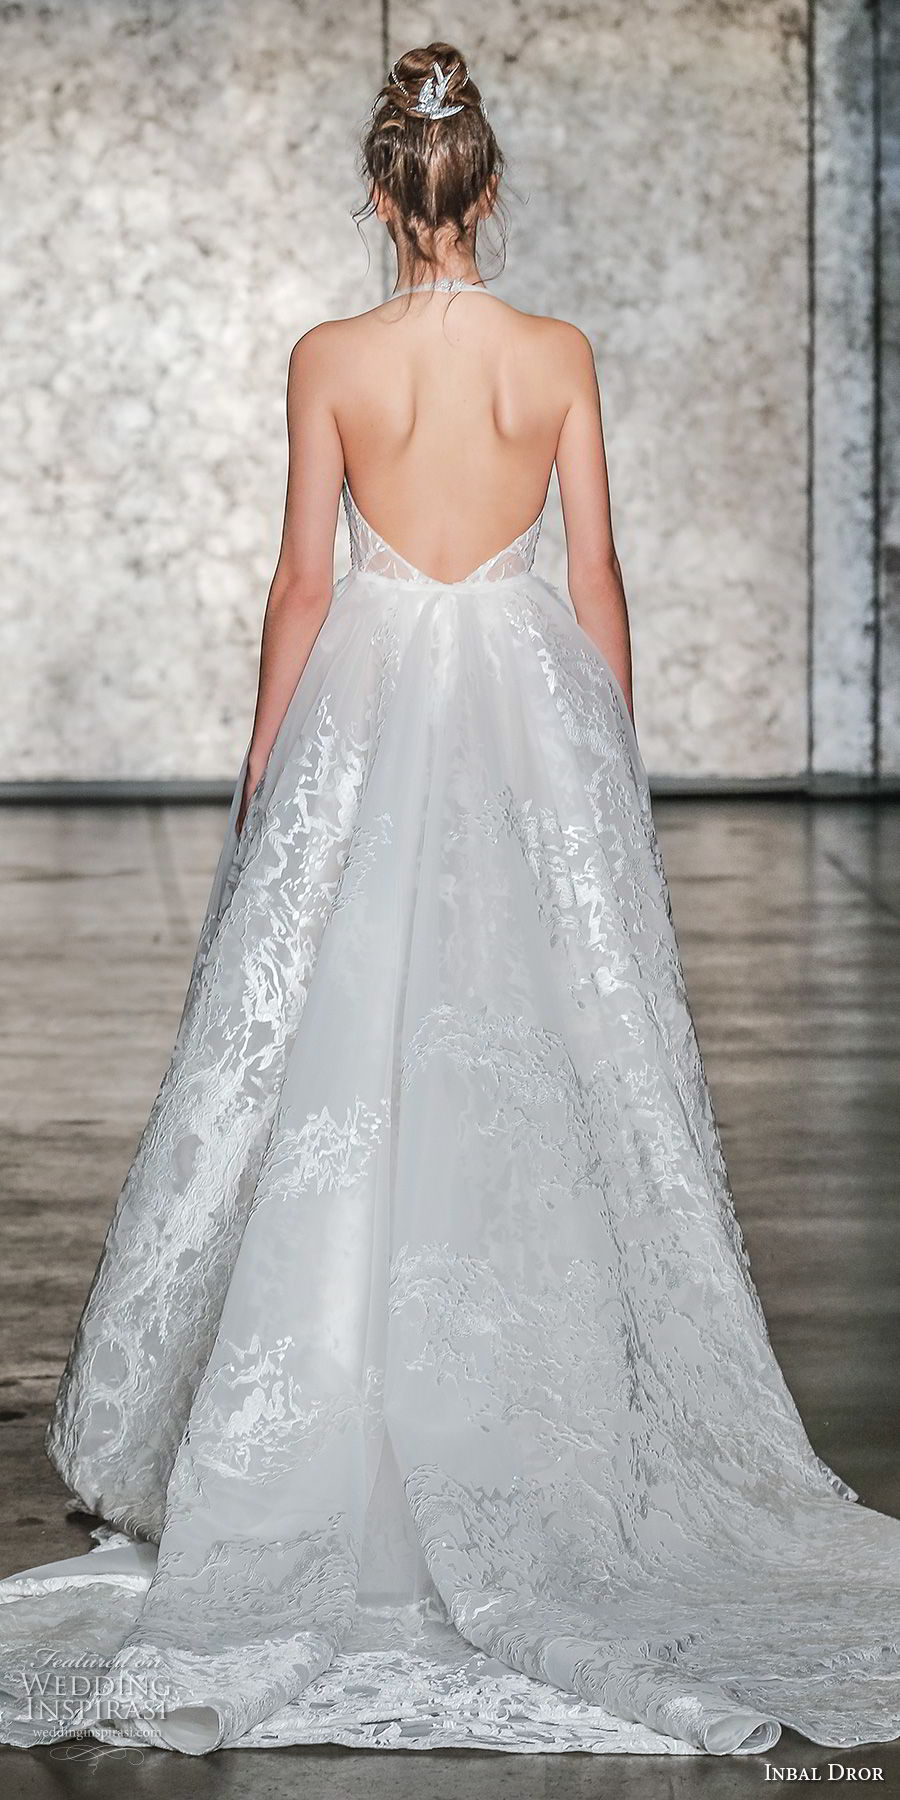 inbal dror fall 2018 bridal sleeveless deep v plunging neck full embellishment elegant sexy a line wedding dress open back chapel train (26) bv